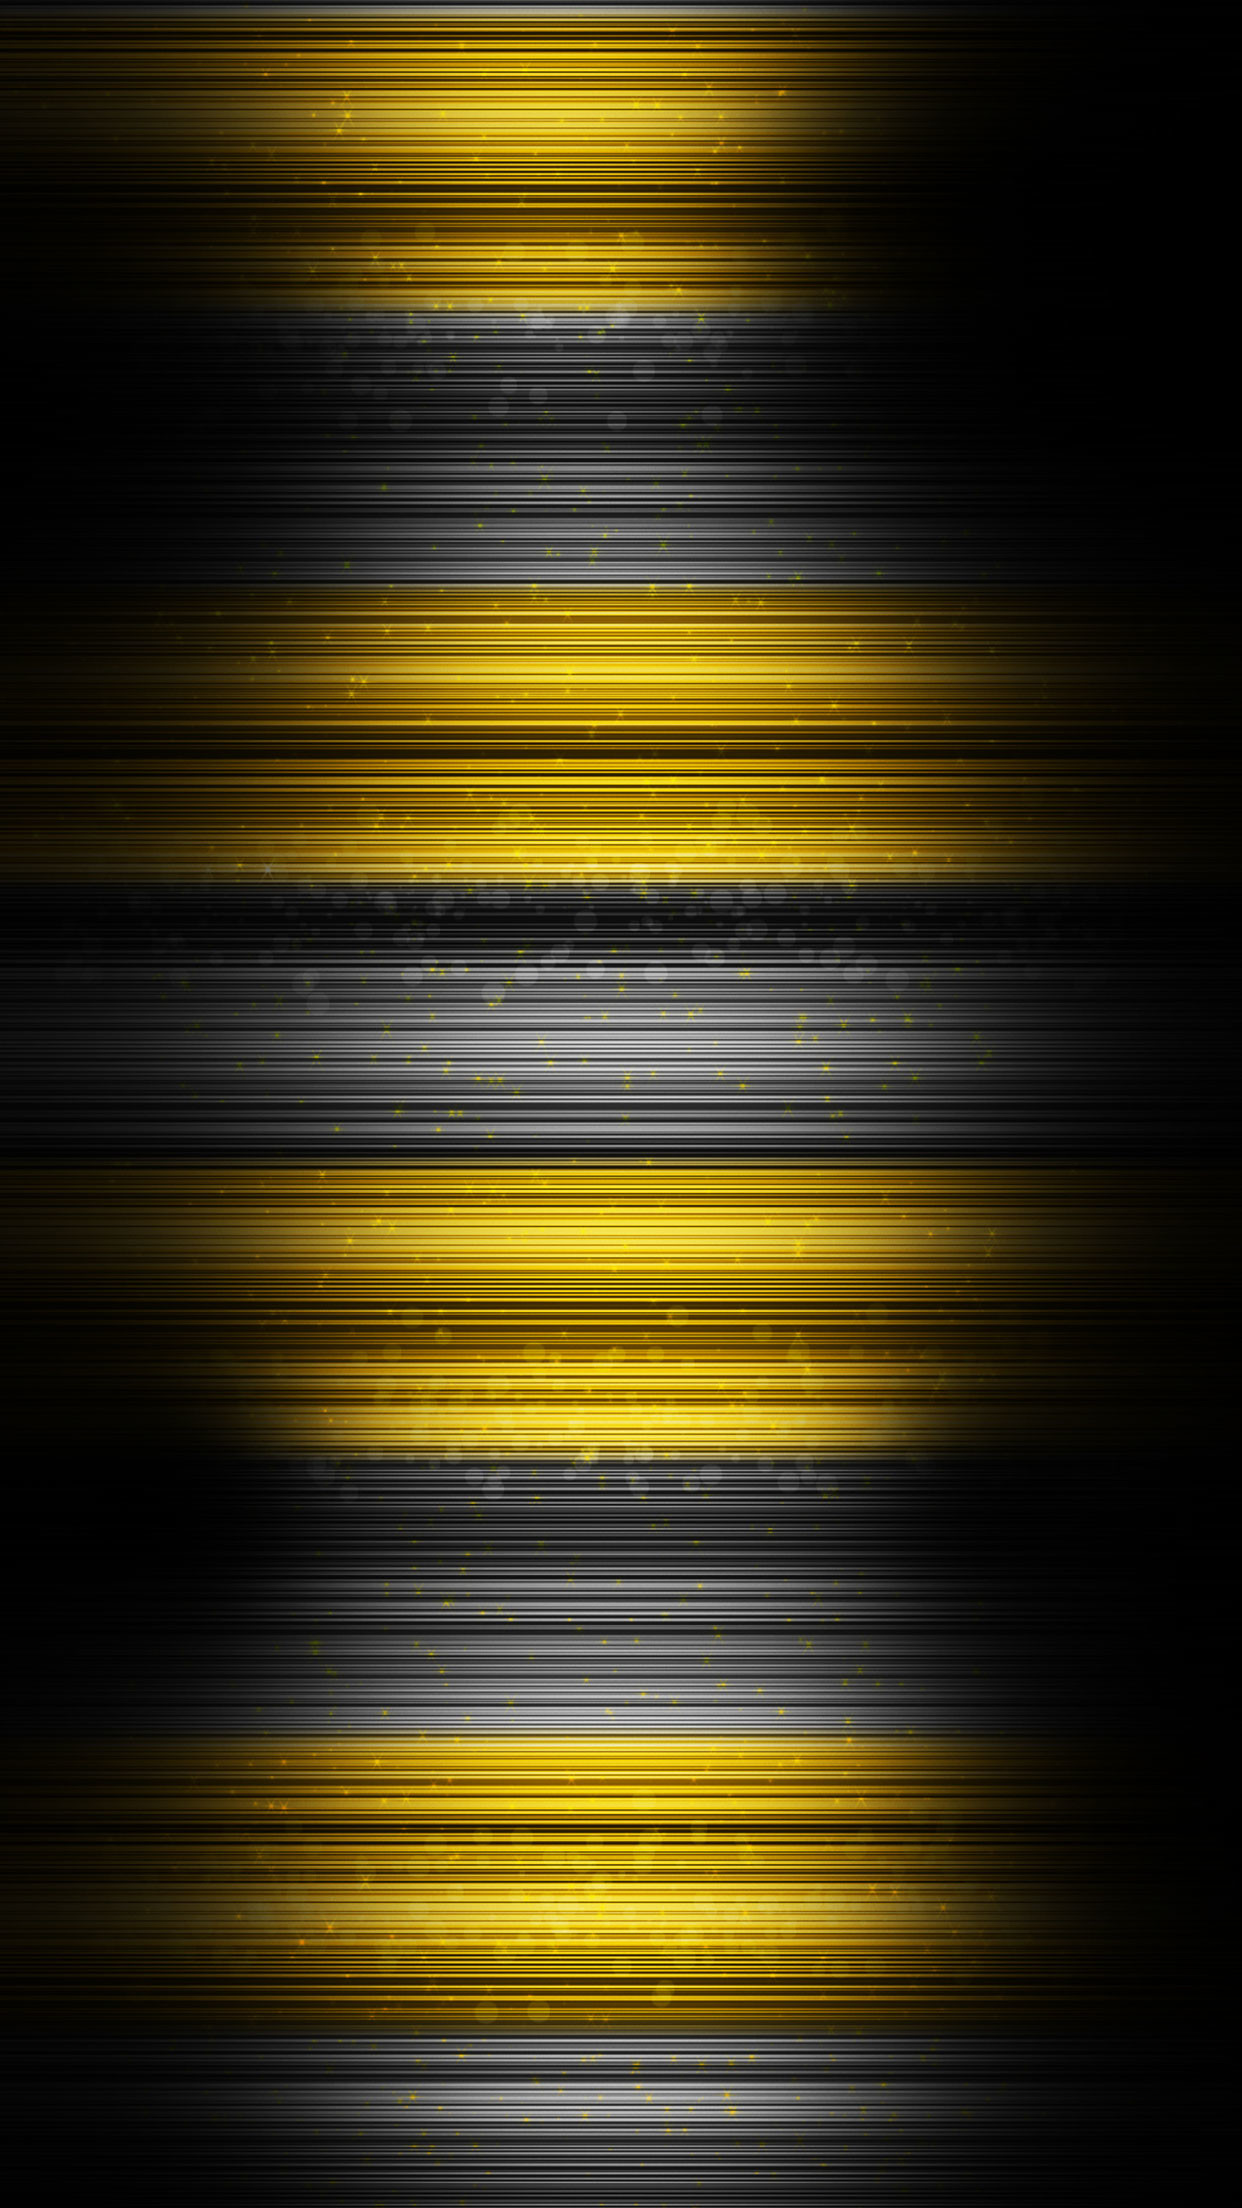 Yellow and black abstract wallpaper for #Iphone and #Android #abstract # wallpaper more